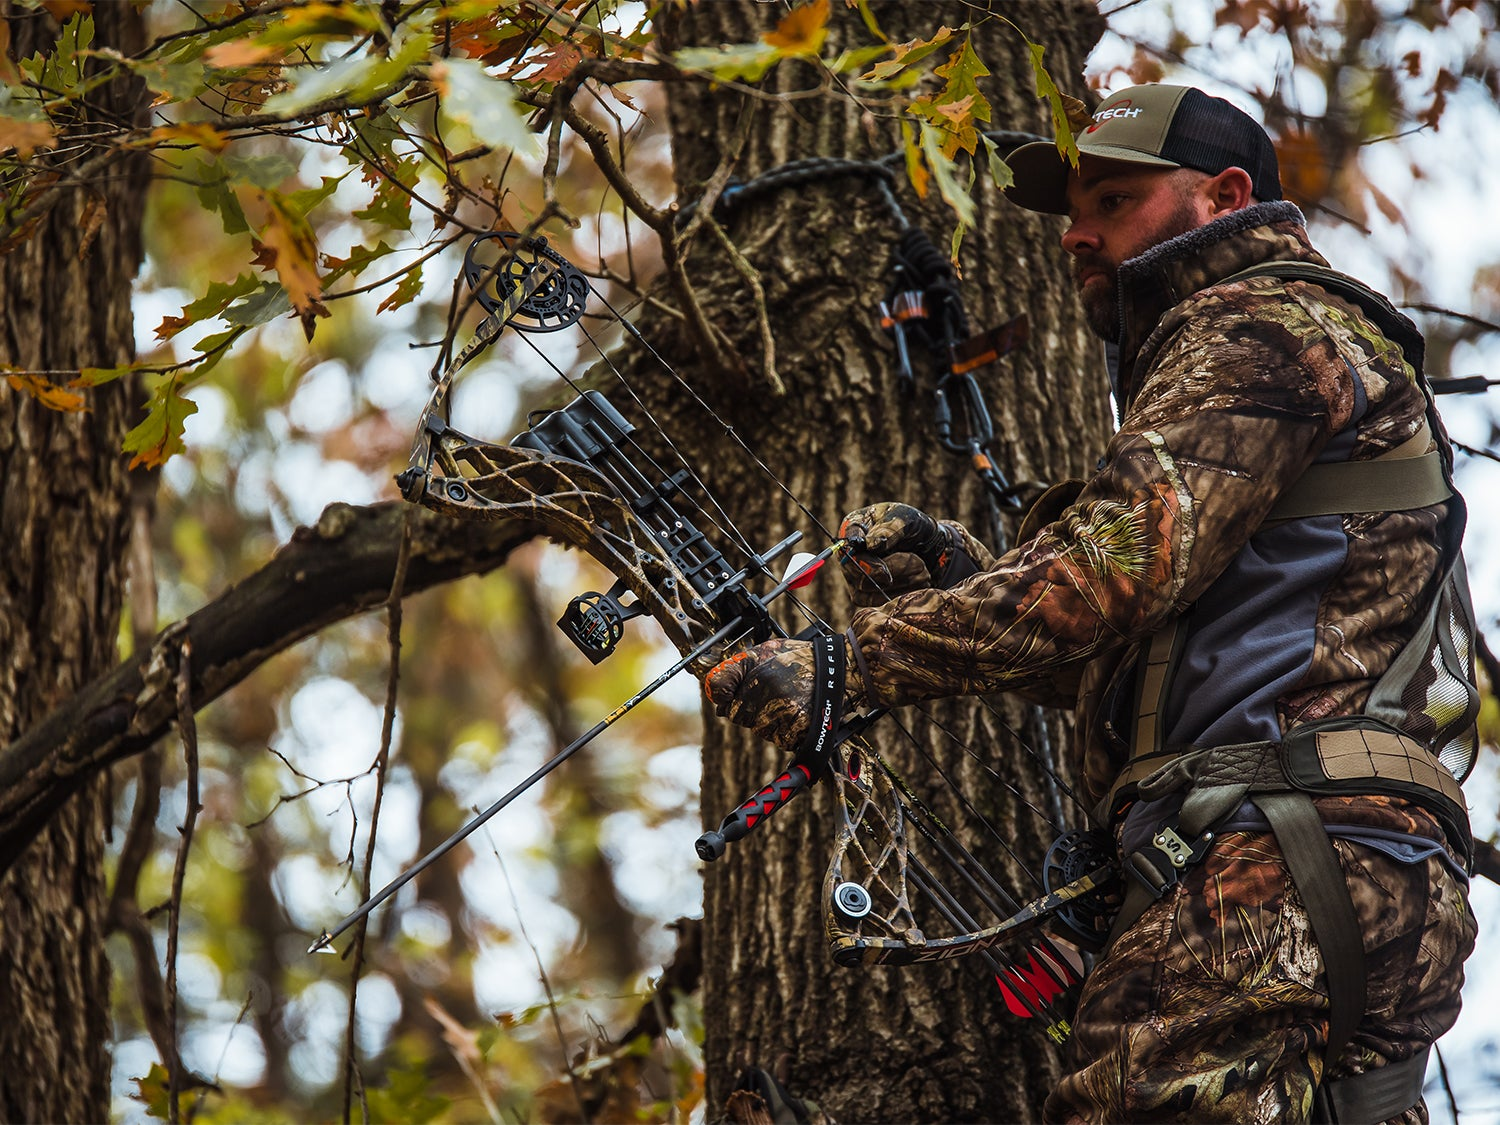 A hunter stands in a treestand and holds a compound bow.